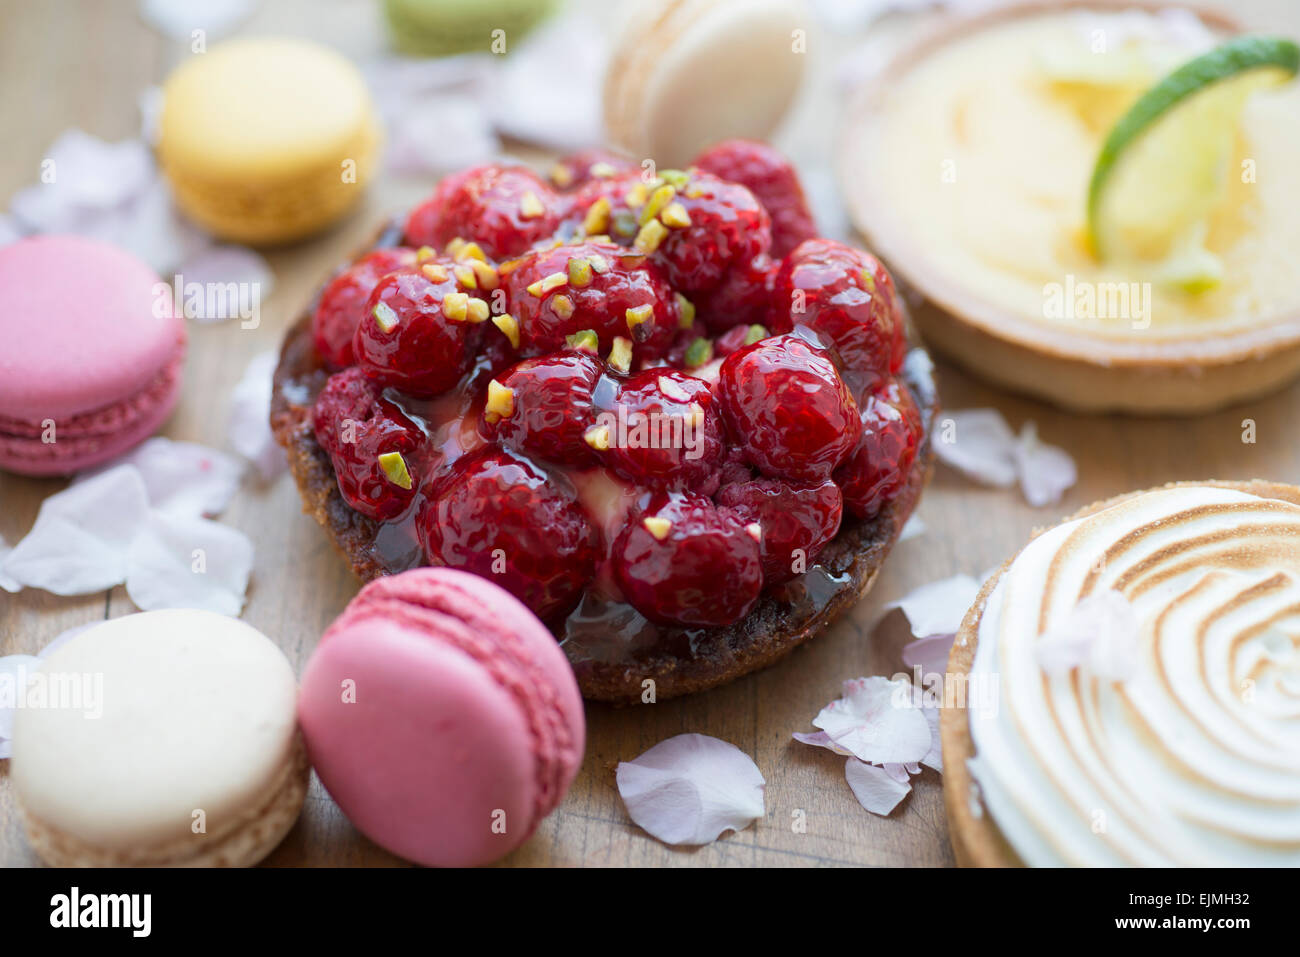 Raspberry tart from high end patisserie, Paris, France - Stock Image